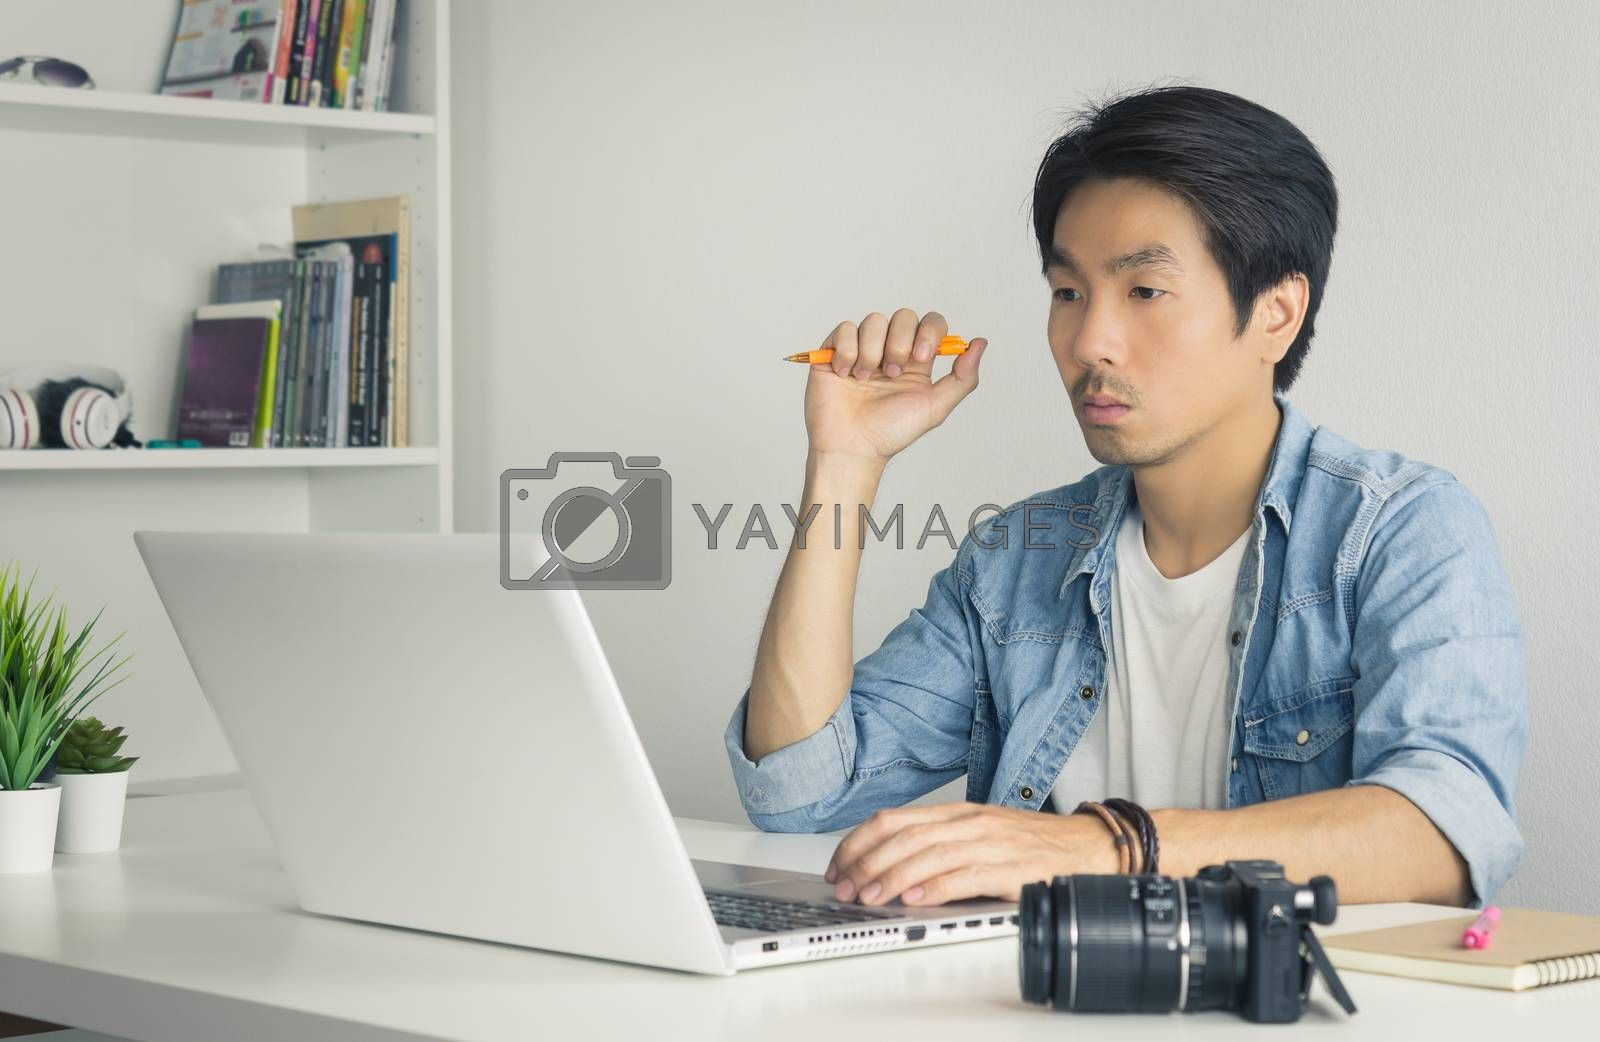 Asian Photographer or Freelancer in Denim or Jeans Shirt Hold Pen and Thinking in Front of Laptop in Home Office. Serious photographer or Freelancer working with technology